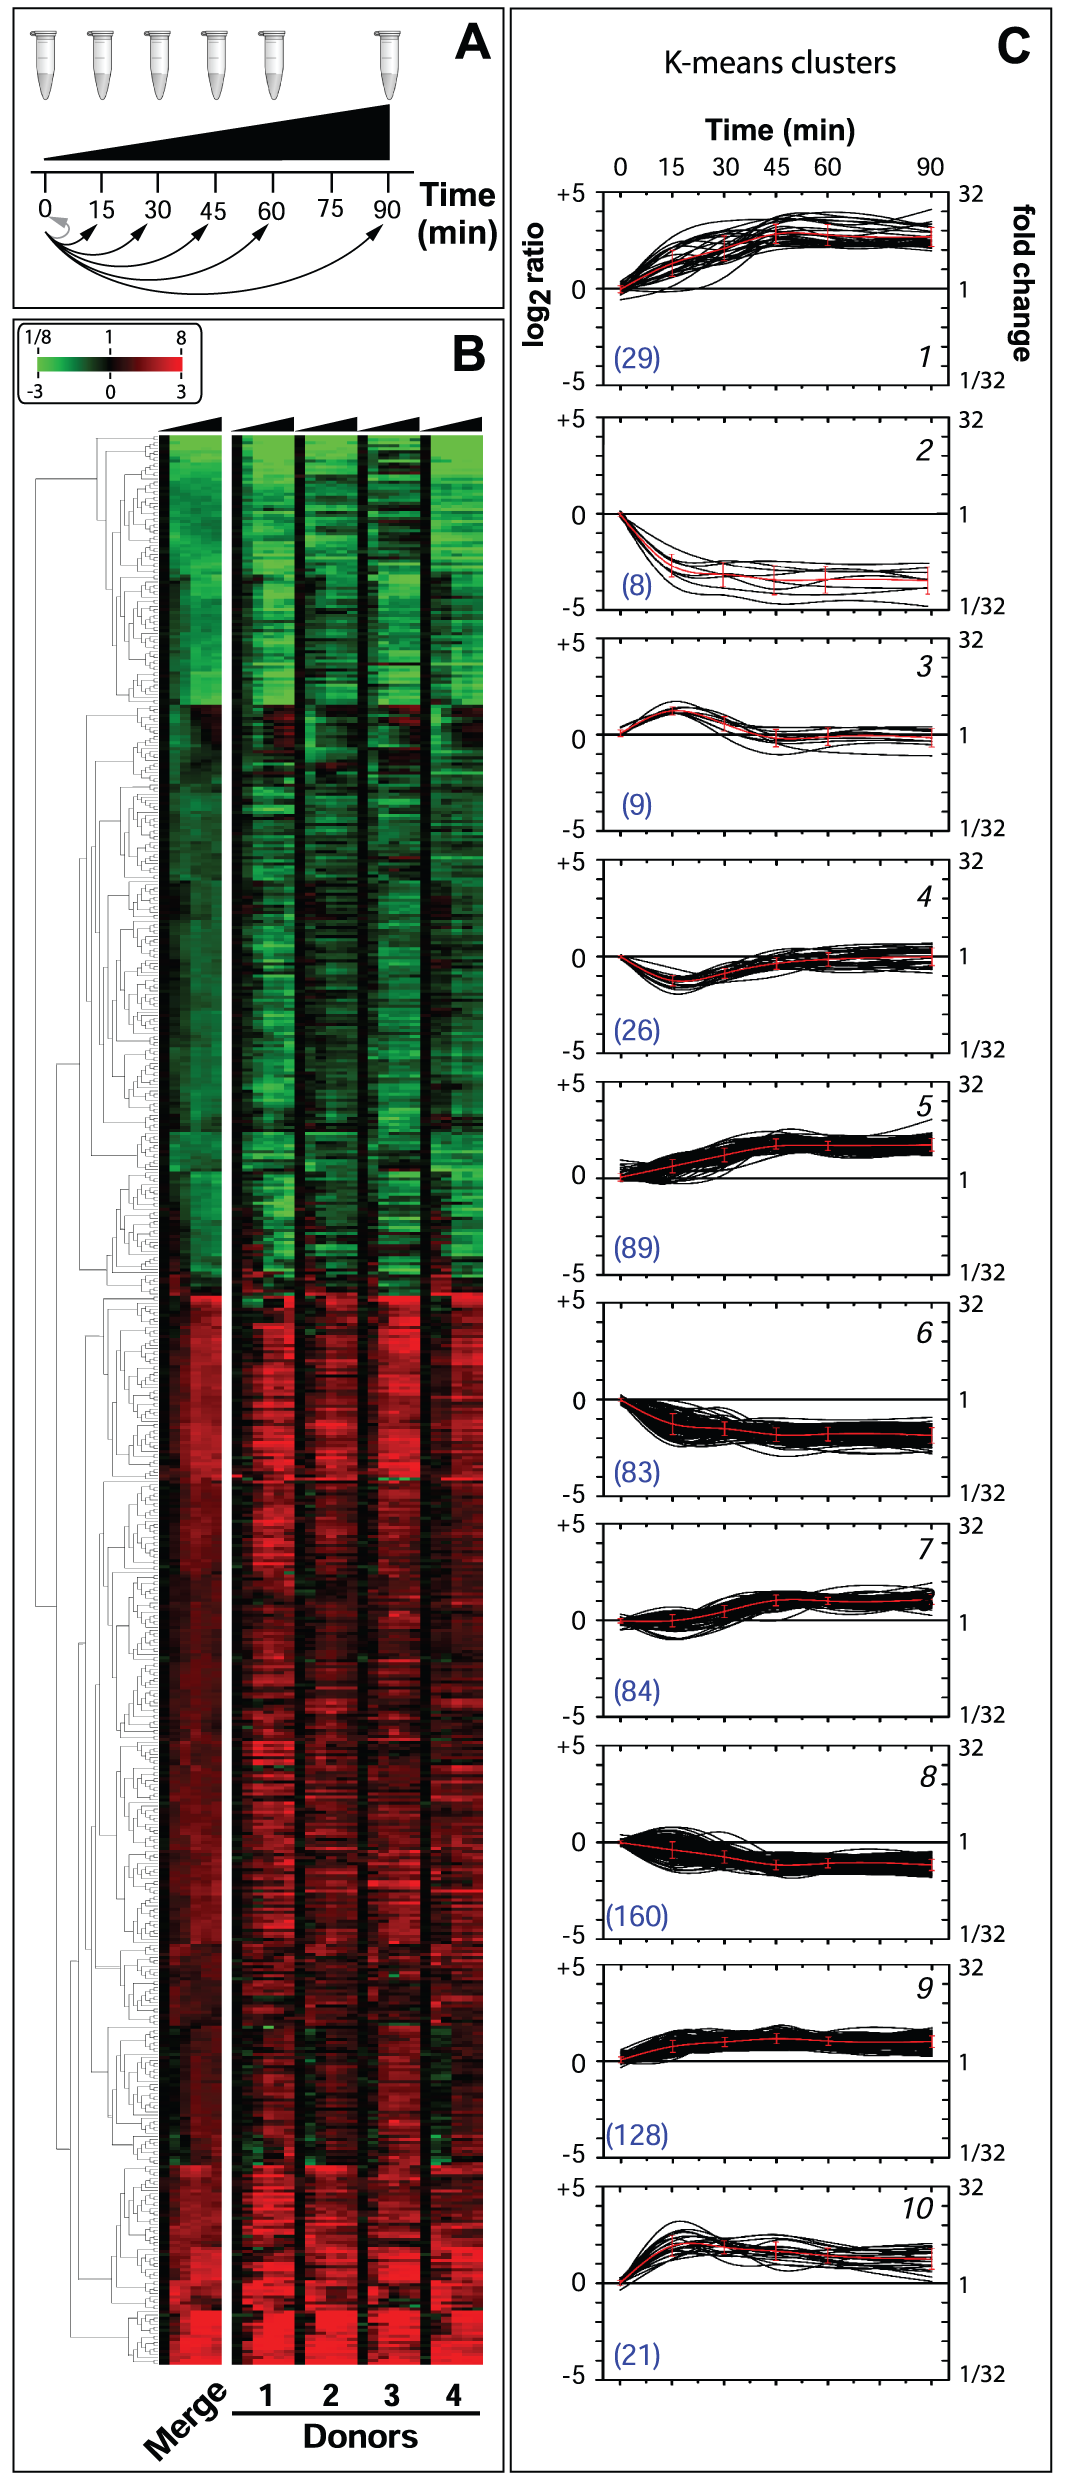 Global changes of Nm gene expression in human whole blood.